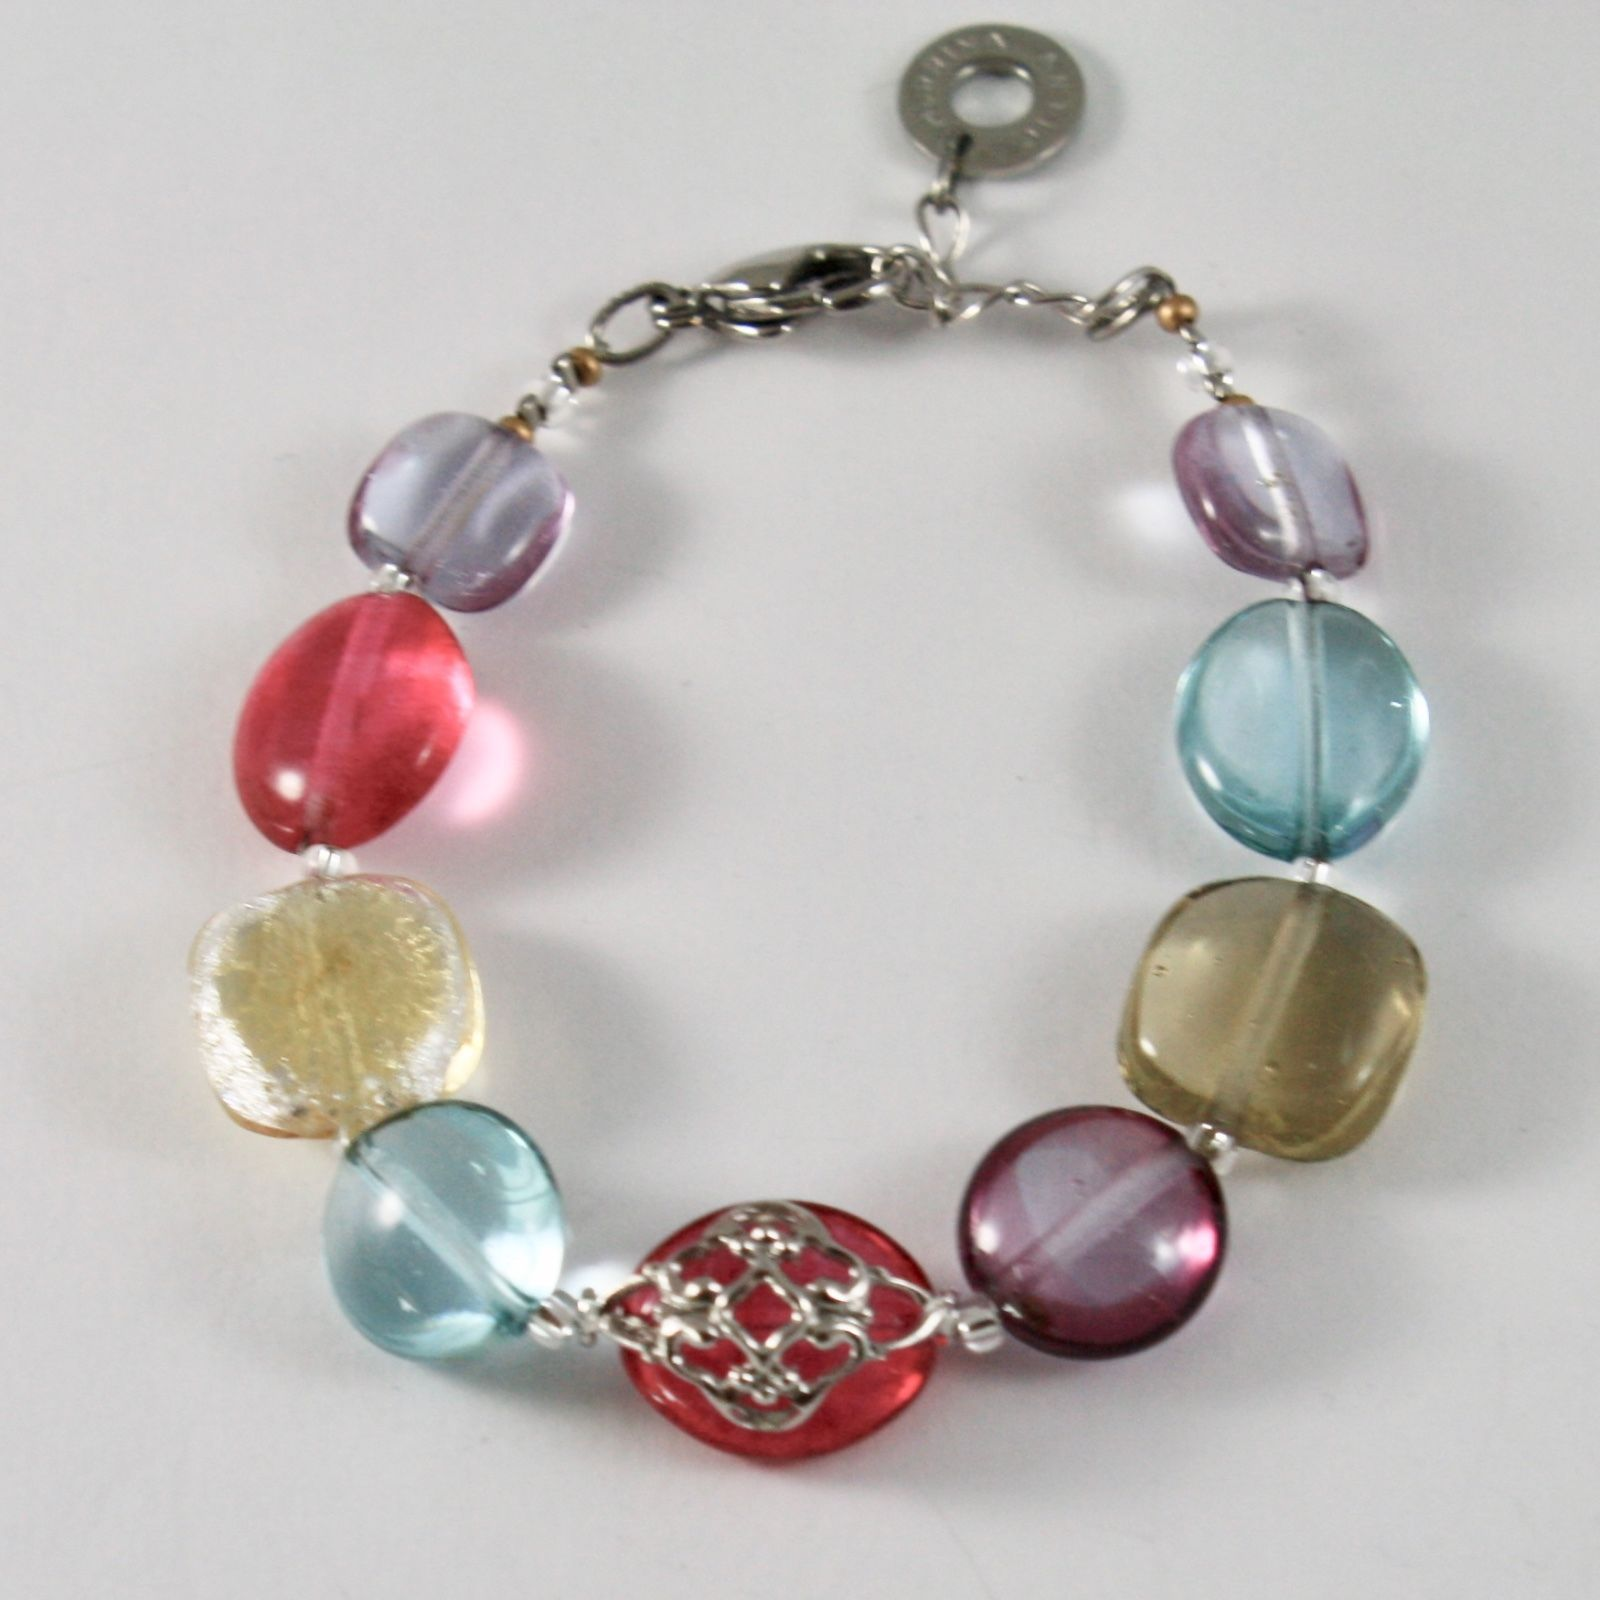 ANTICA MURRINA VENEZIA BRACELET WITH MURANO GLASS OVALS RED PURPLE YELLOW BLUE